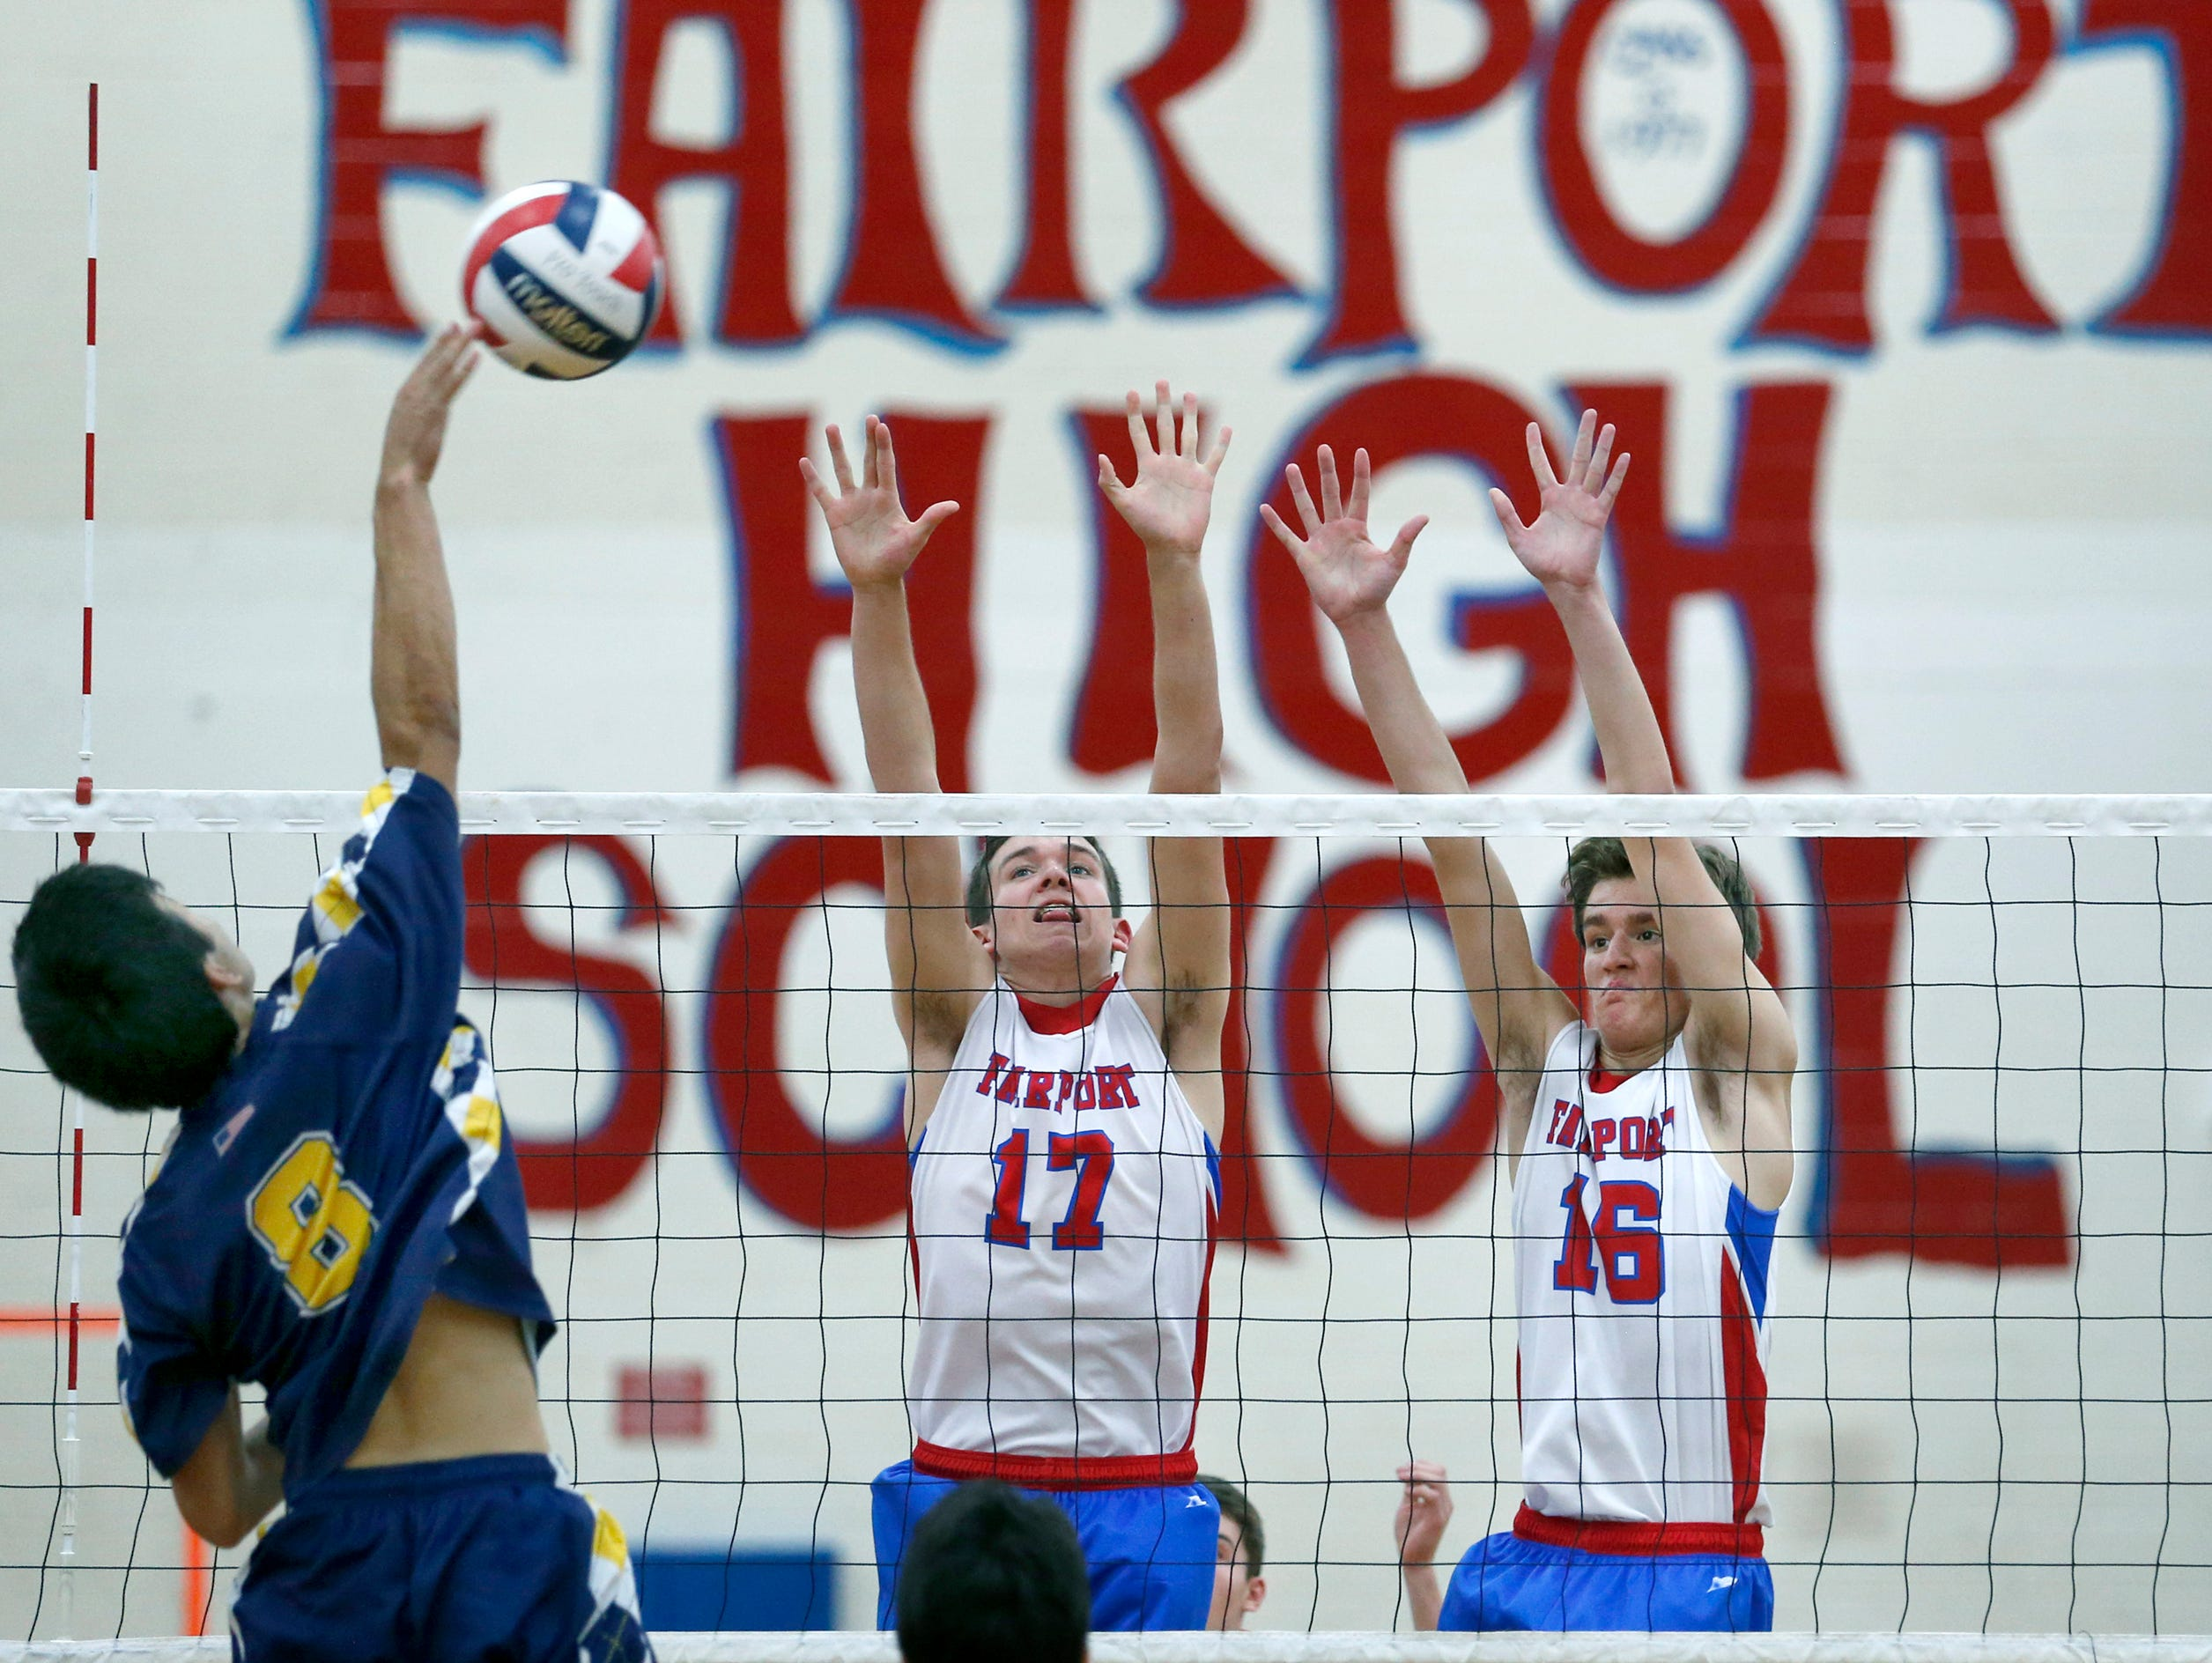 Victor's Kyle Sumarsono attacks as Fairport's Jack Scheutzow and Mitch D'Agostino get ready to block in the first set at Fairport High School.